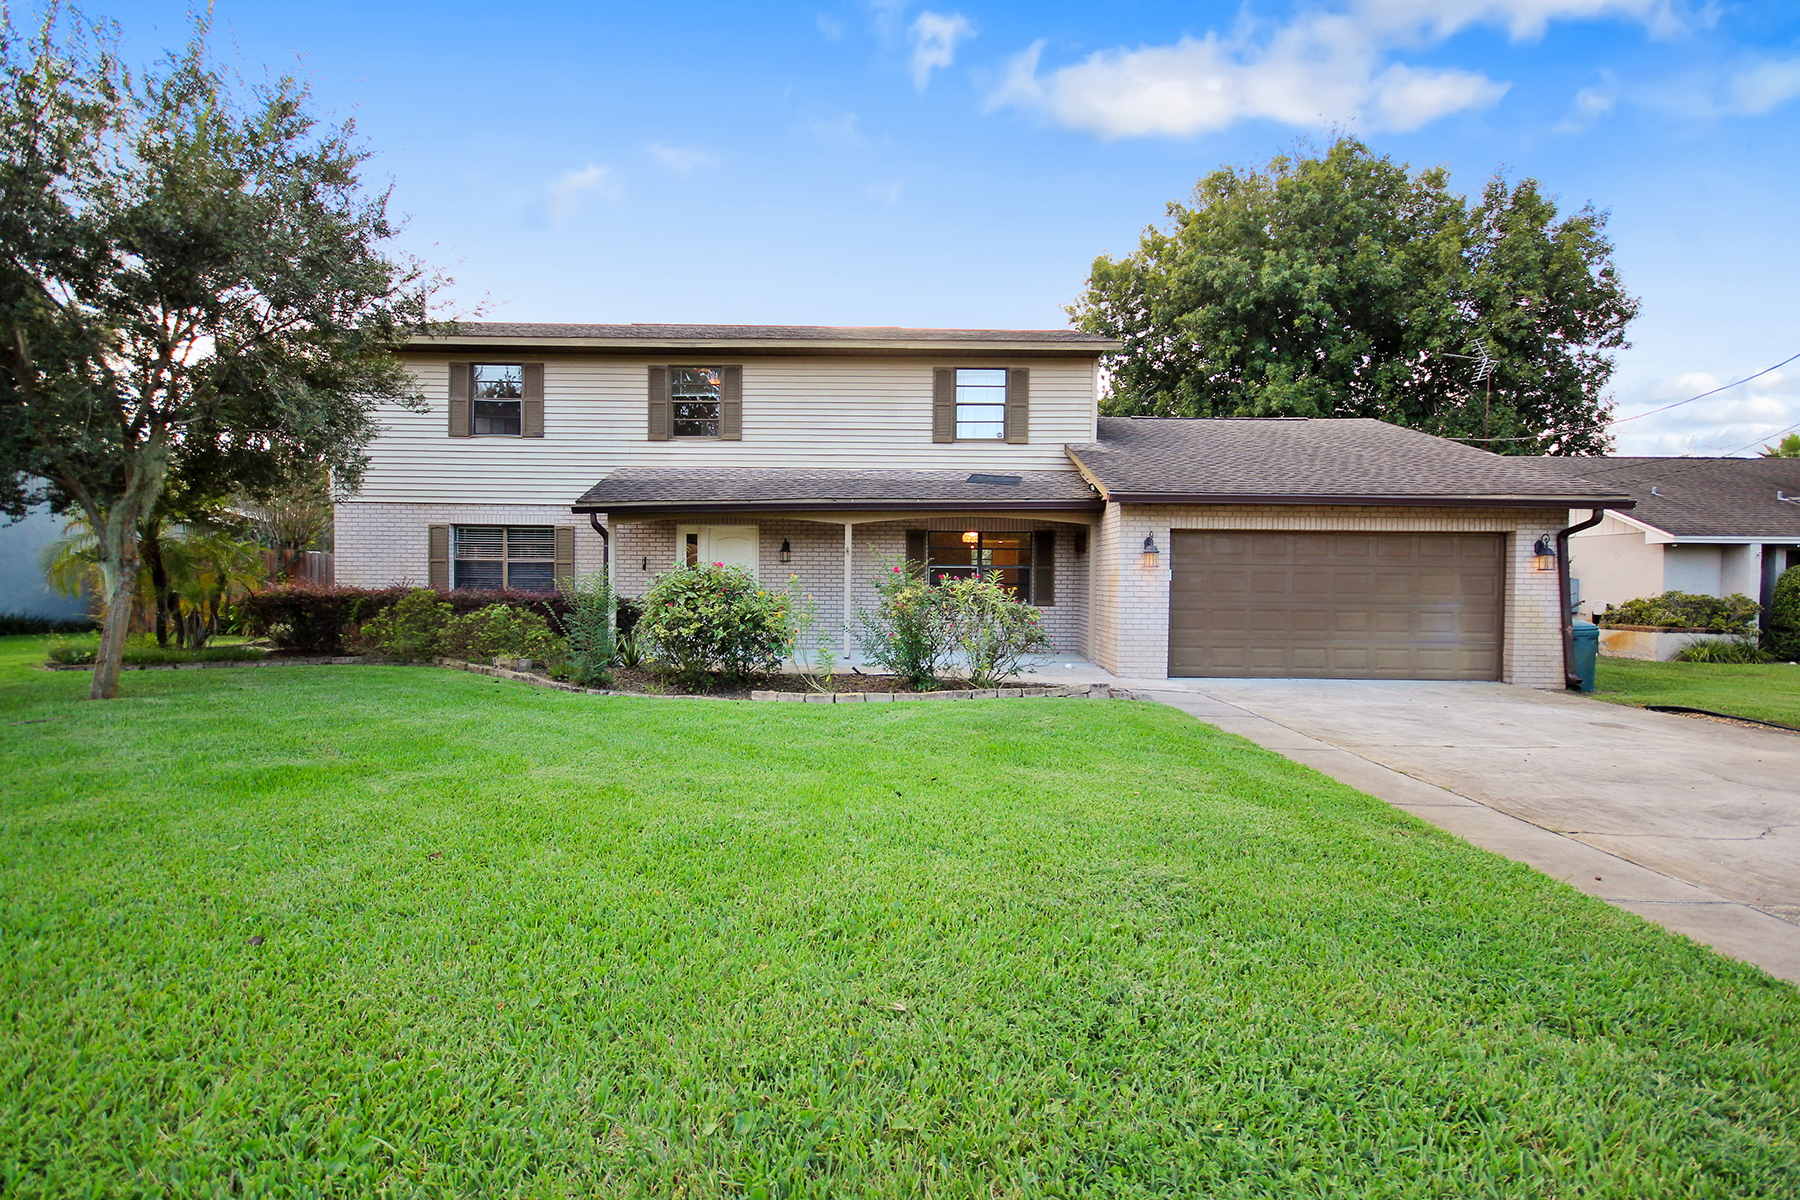 House for Sale at APOPKA 1142 N Floral Way Apopka, Florida 32703 United States